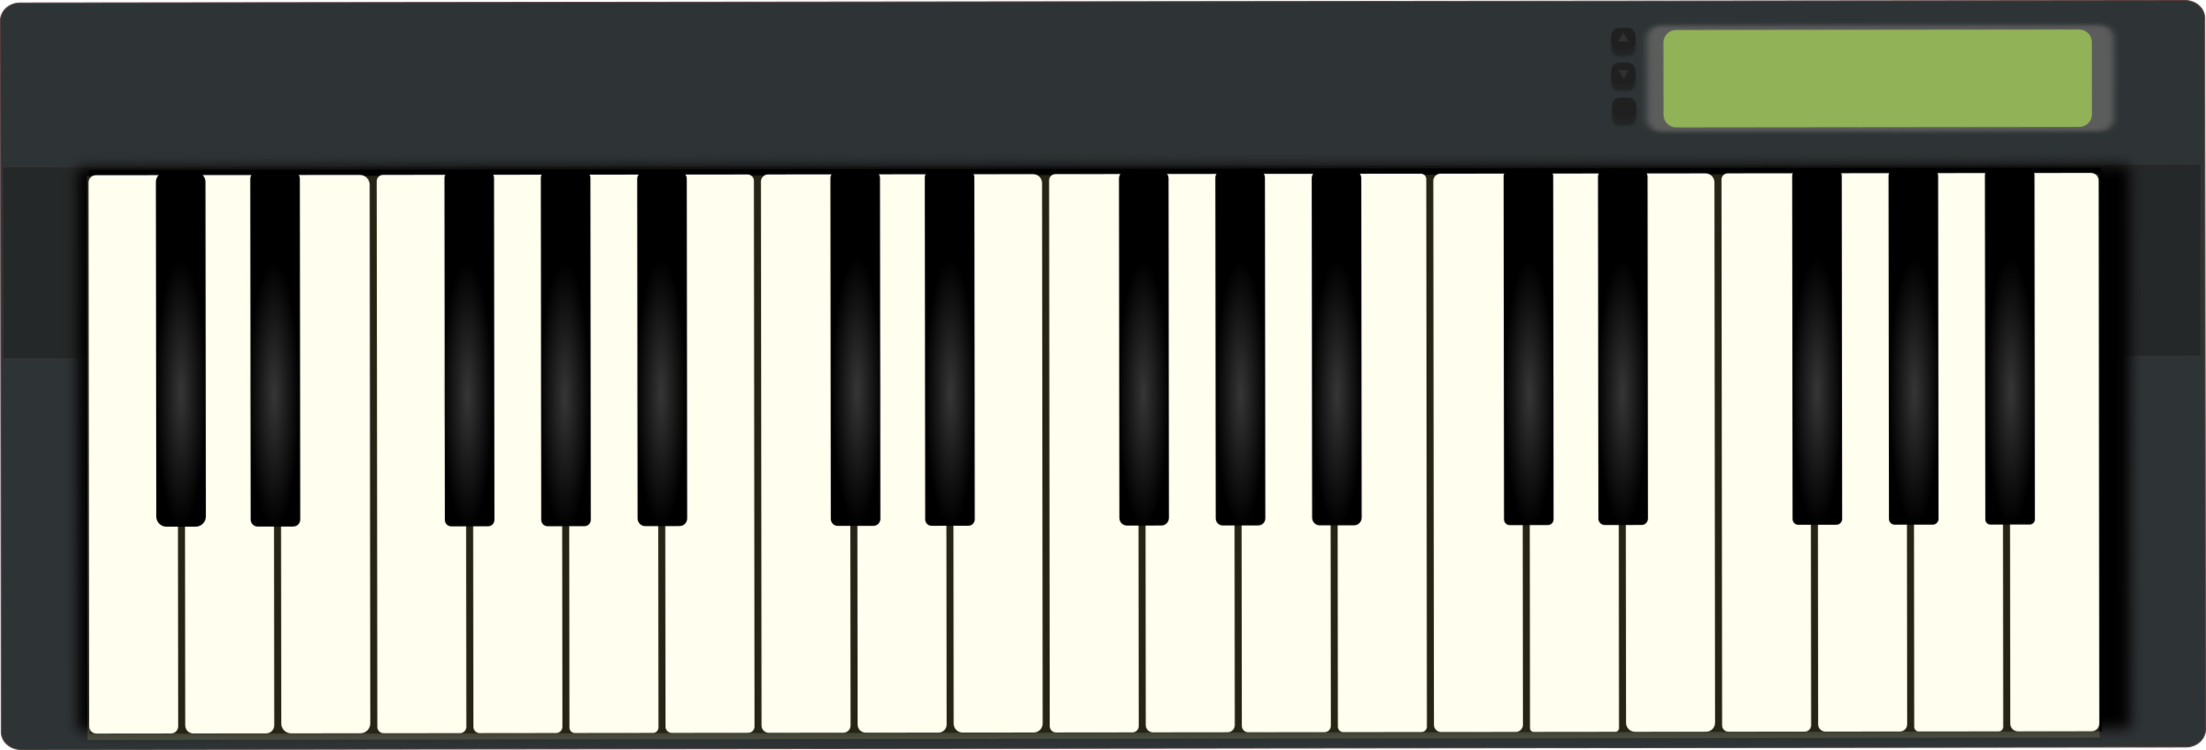 jpg transparent library Digital piano instrument electric. Musical keyboard clipart